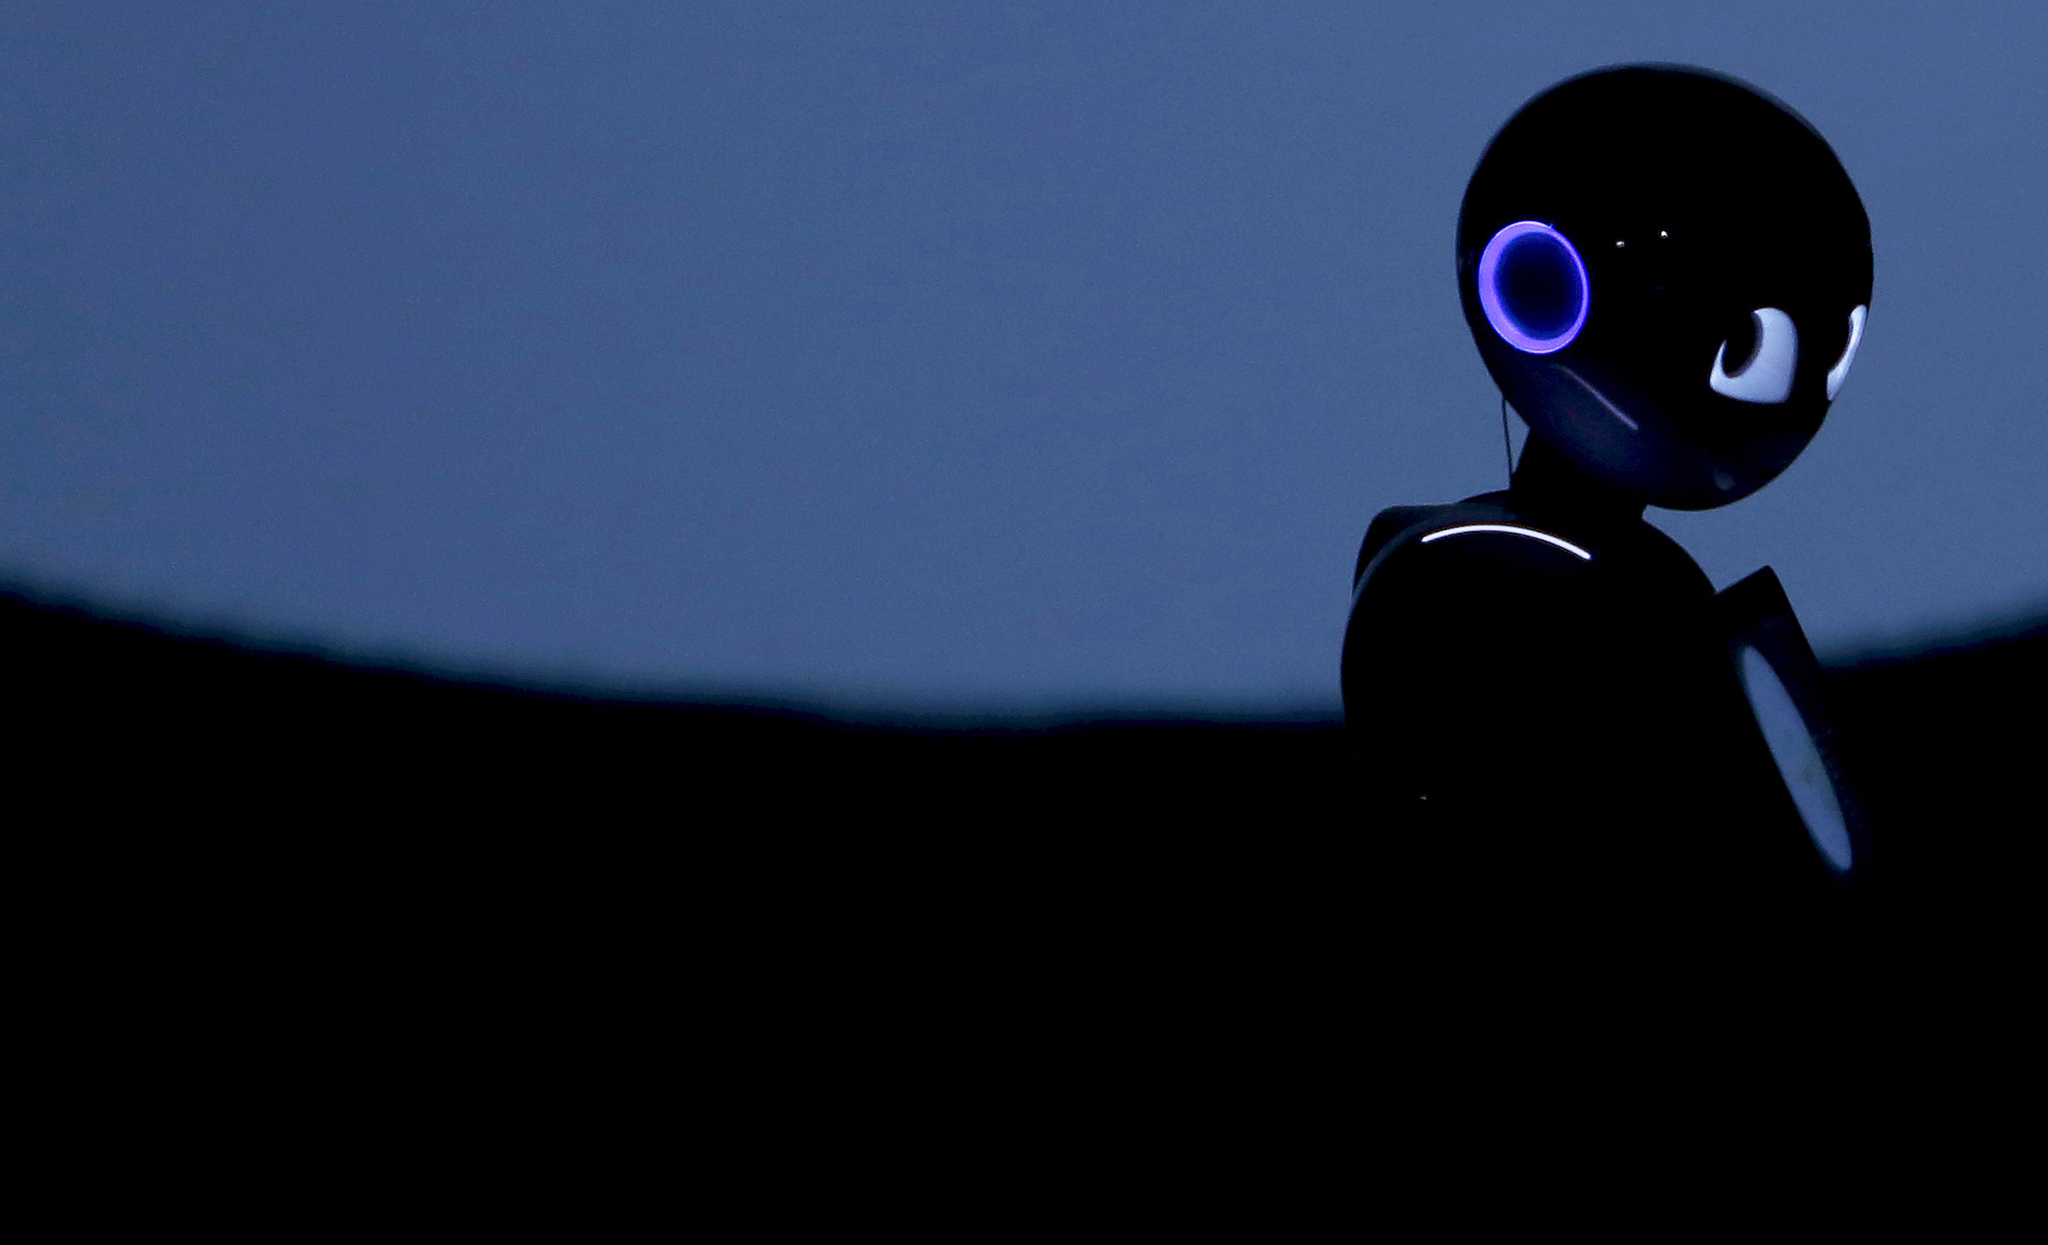 SoftBank's human-like robot named 'pepper' performs during a news conference in Chiba...SoftBank's human-like robot named 'pepper' performs during a news conference in Chiba, Japan, June 18, 2015. Japan's SoftBank Corp said on Thursday it is setting up a joint venture with Chinese online shopping giant Alibaba and electronics supplier Foxconn Technology to sell its human-like robot Pepper around the world. REUTERS/Yuya Shino